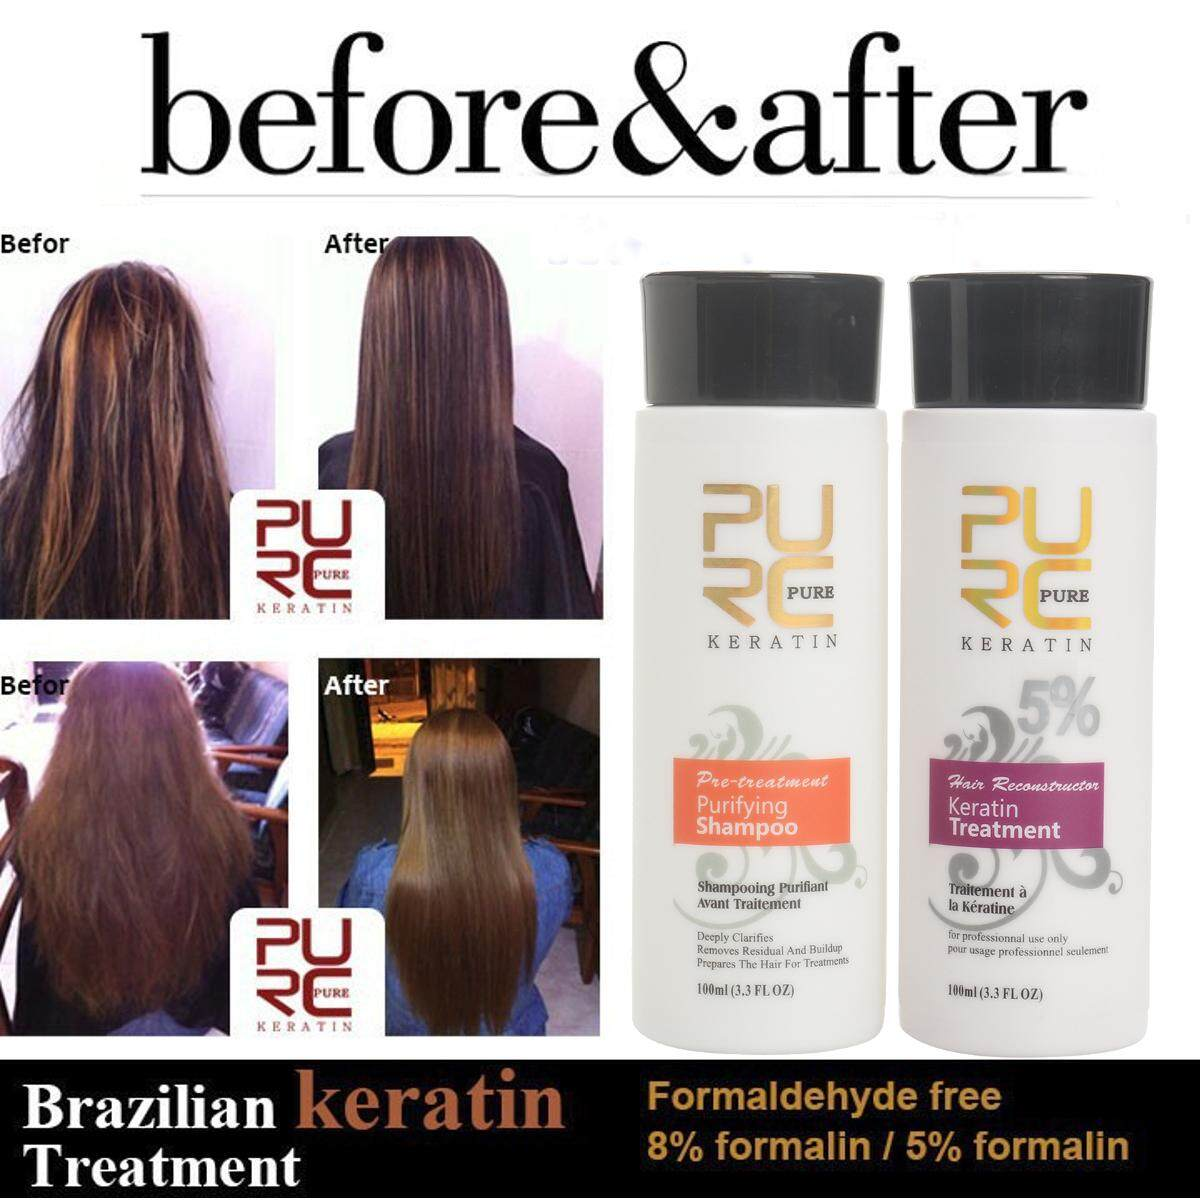 Pure Brazilian Keratin Hair Straightening Treatment 100ml Blow Dry + Shampoo Kit By Glimmer.